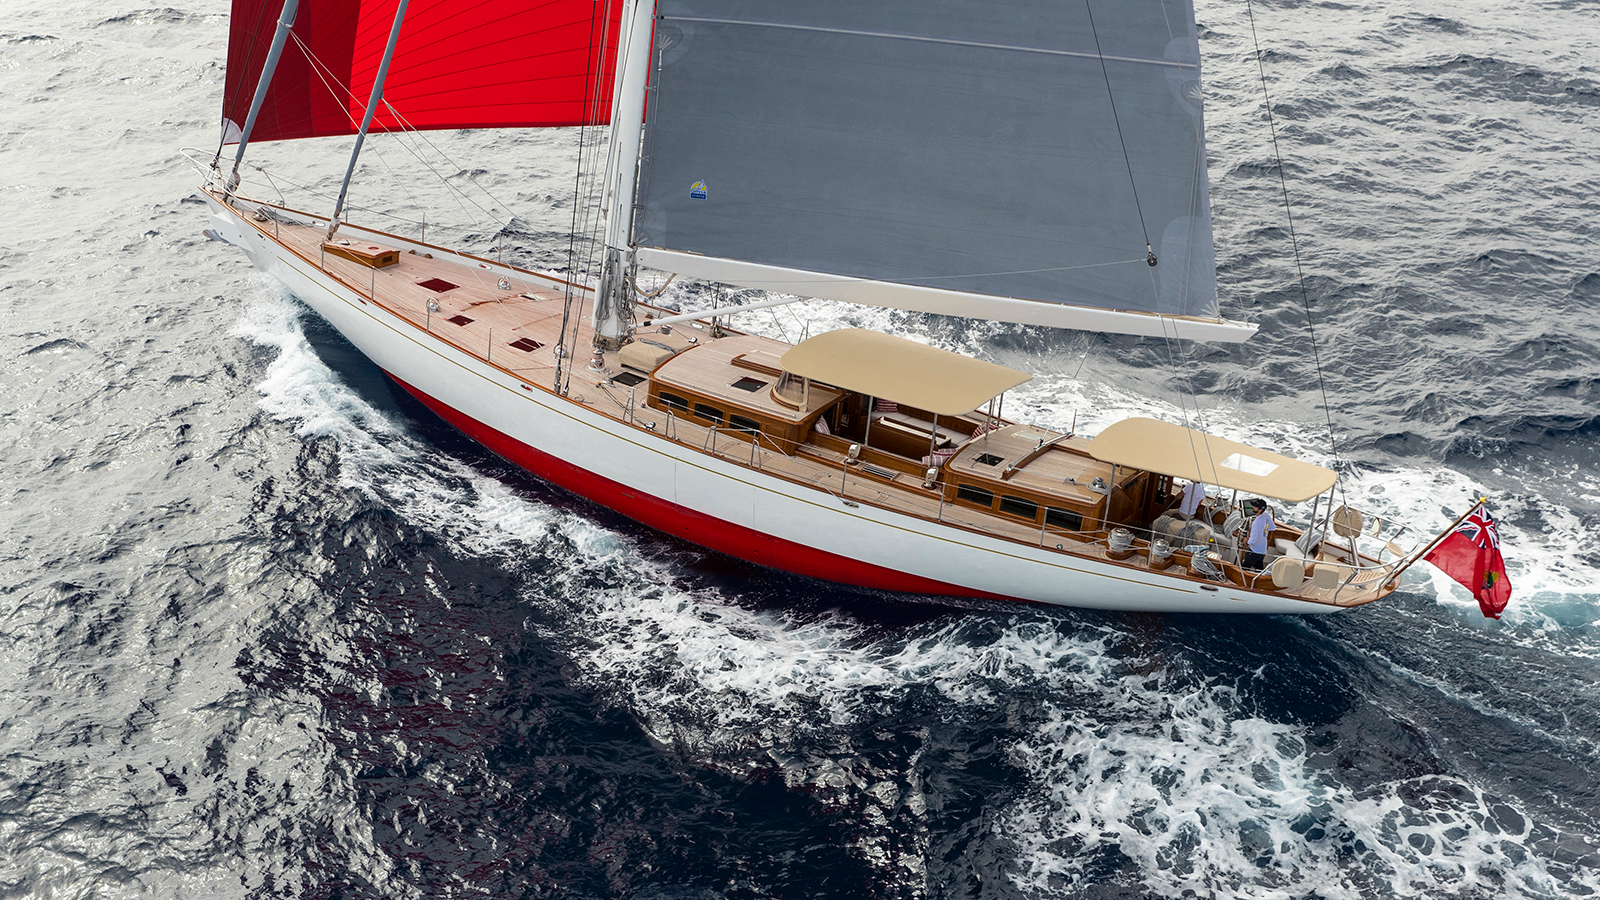 aerial-view-of-the-claasen-truly-classic-90-sailing-yacht-acadia